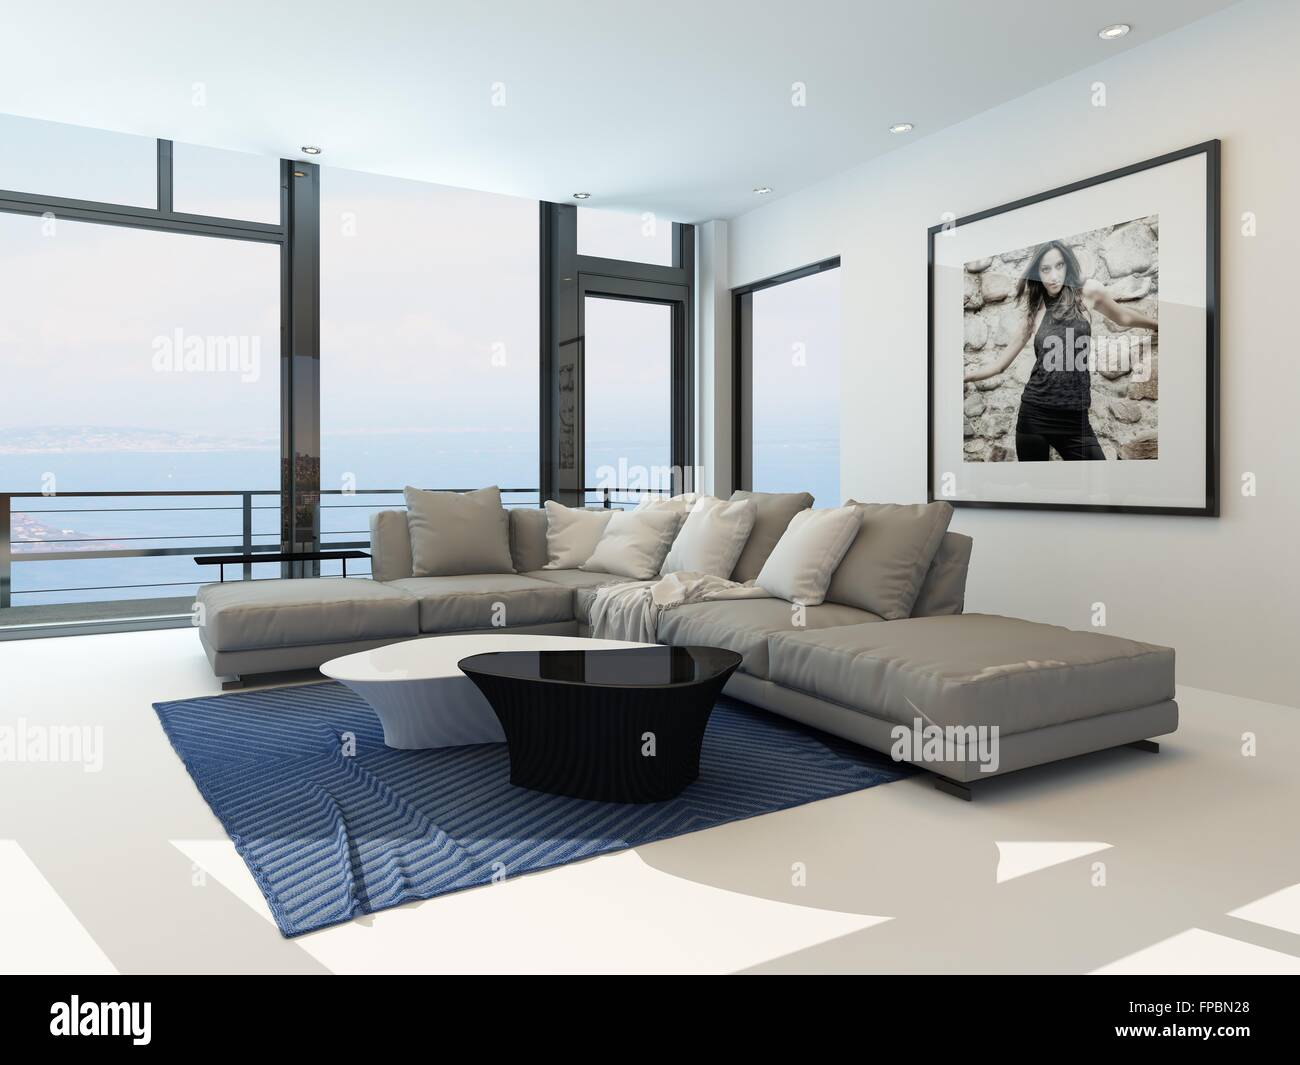 Couch Sofa Lounge Suite Stockfotos & Couch Sofa Lounge Suite Bilder ...